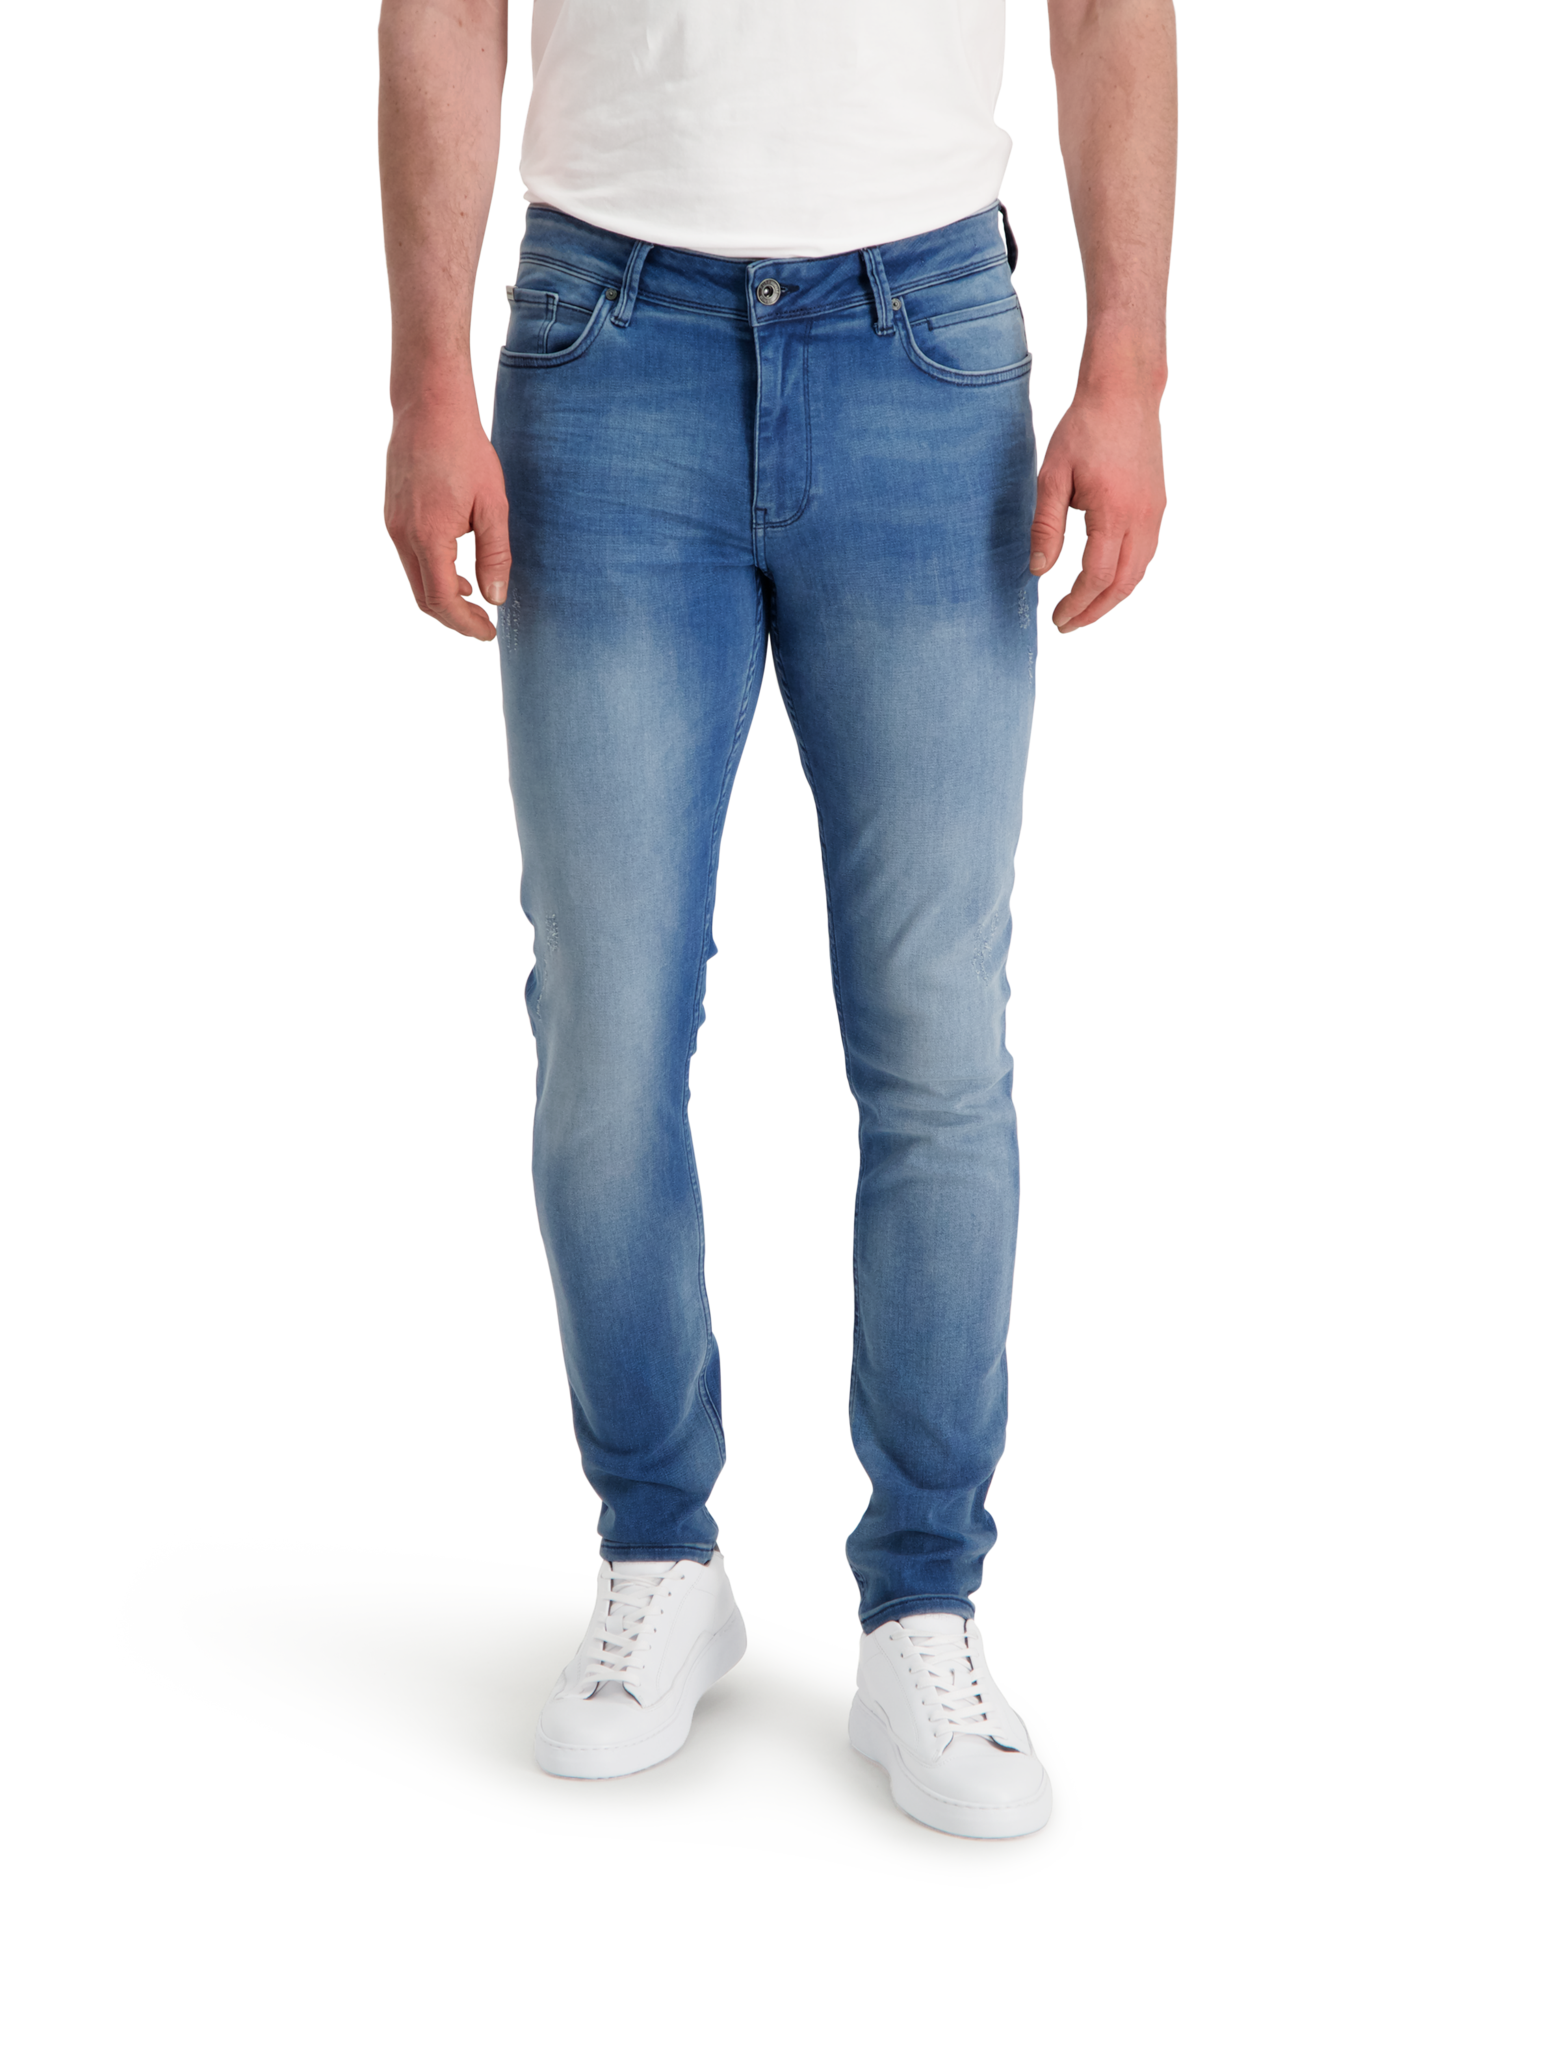 Product image PureWhite The Jone 123 Skinny Fit